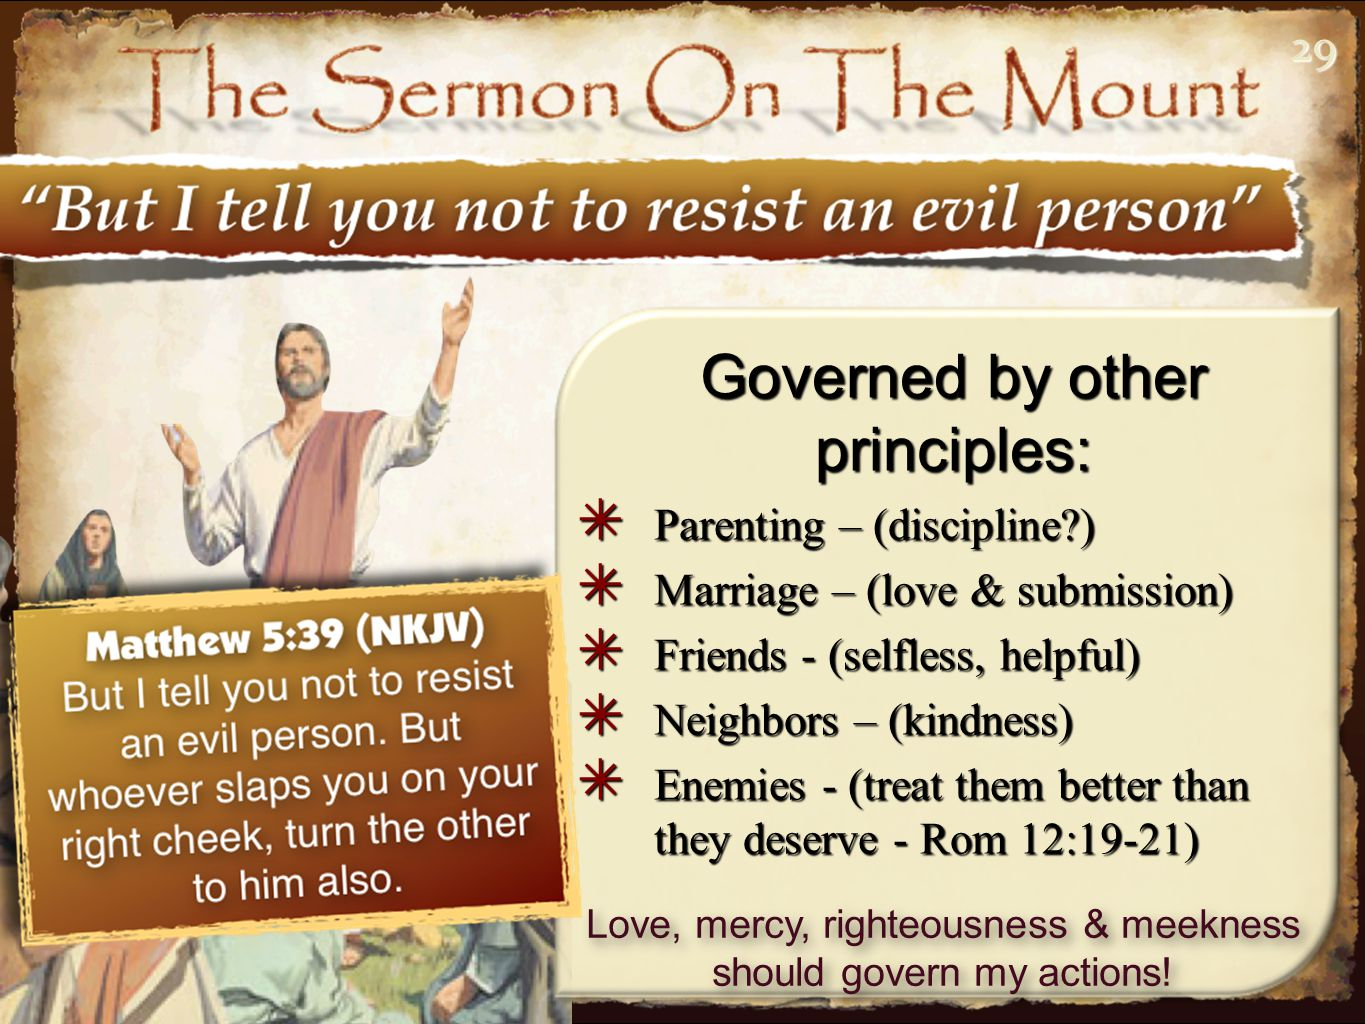 2929 Governed by other principles: ✴ Parenting – (discipline ) ✴ Marriage – (love & submission) ✴ Friends - (selfless, helpful) ✴ Neighbors – (kindness) ✴ Enemies - (treat them better than they deserve - Rom 12:19-21) Love, mercy, righteousness & meekness should govern my actions!